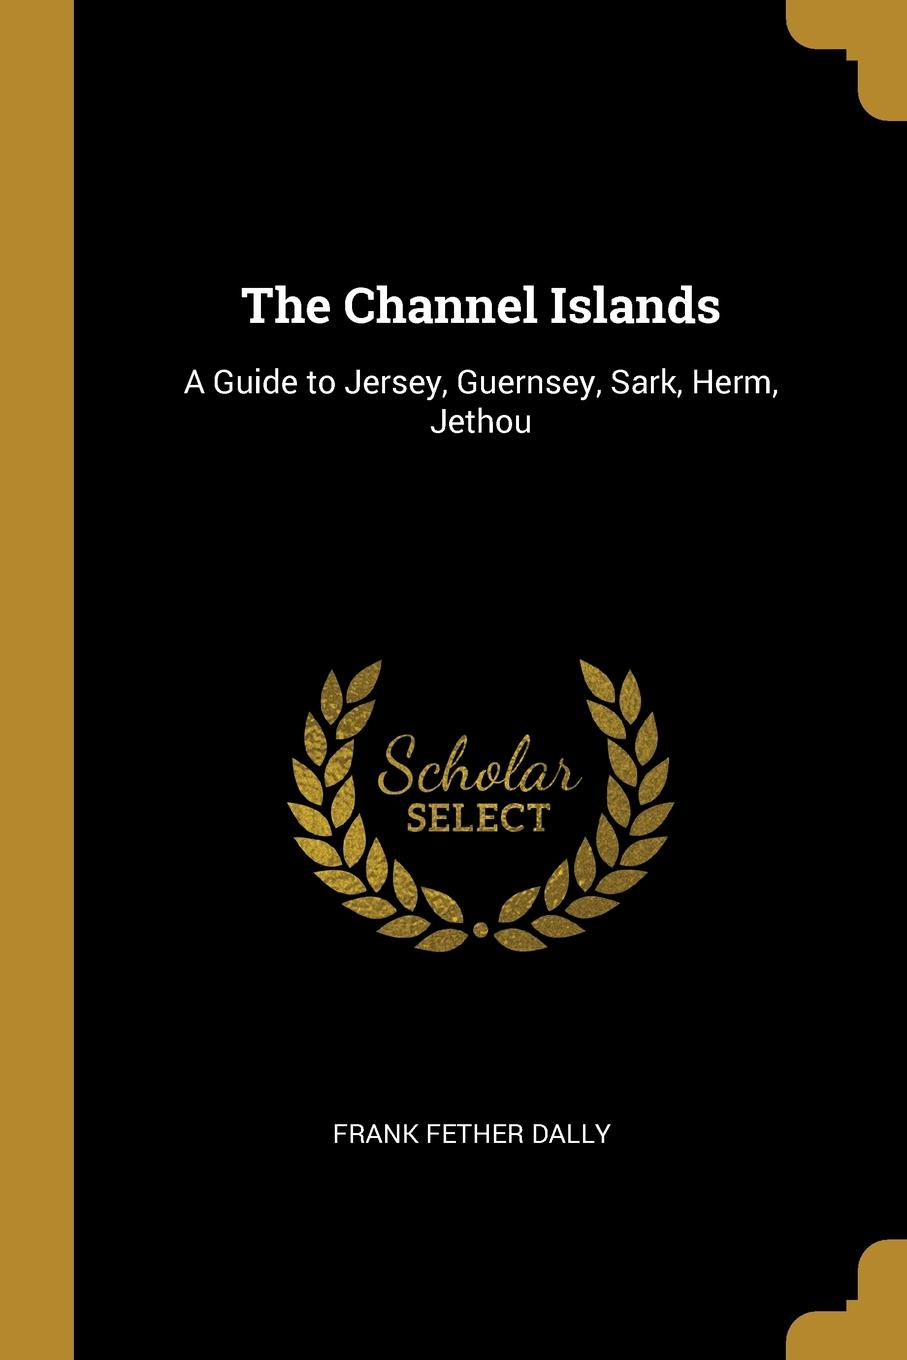 Frank Fether Dally. The Channel Islands. A Guide to Jersey, Guernsey, Sark, Herm, Jethou